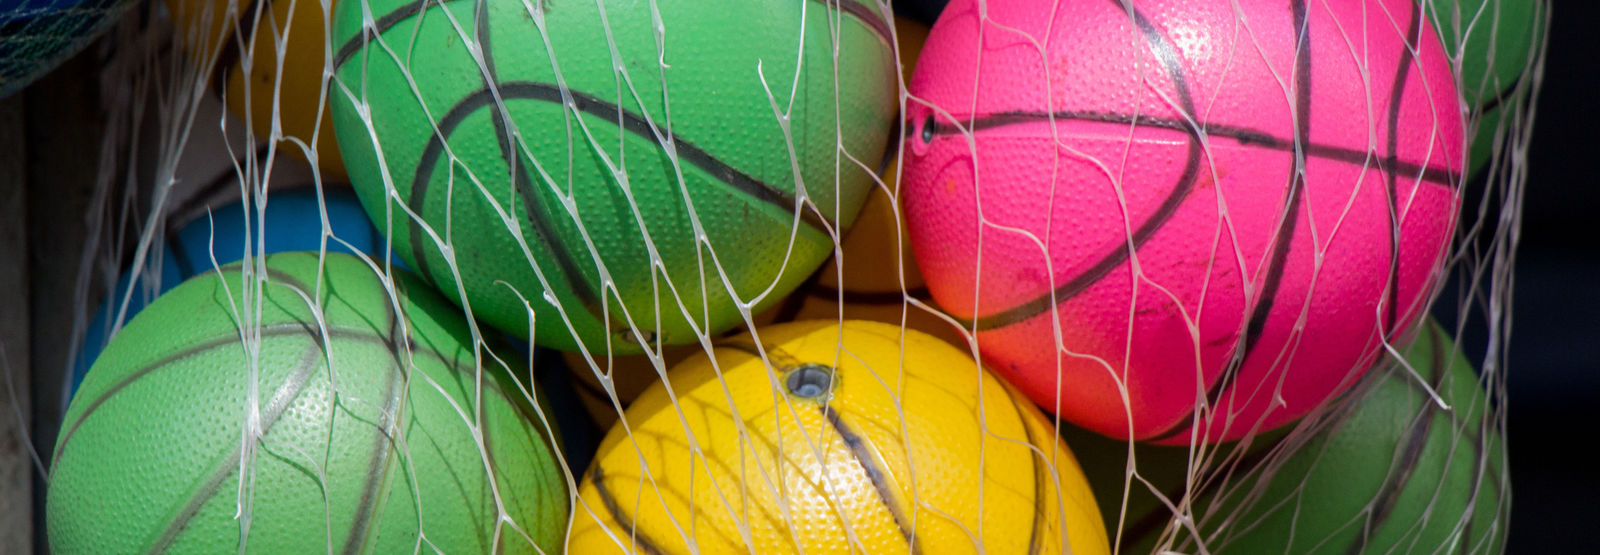 multiple colorful basketballs stored away in torn ball bag